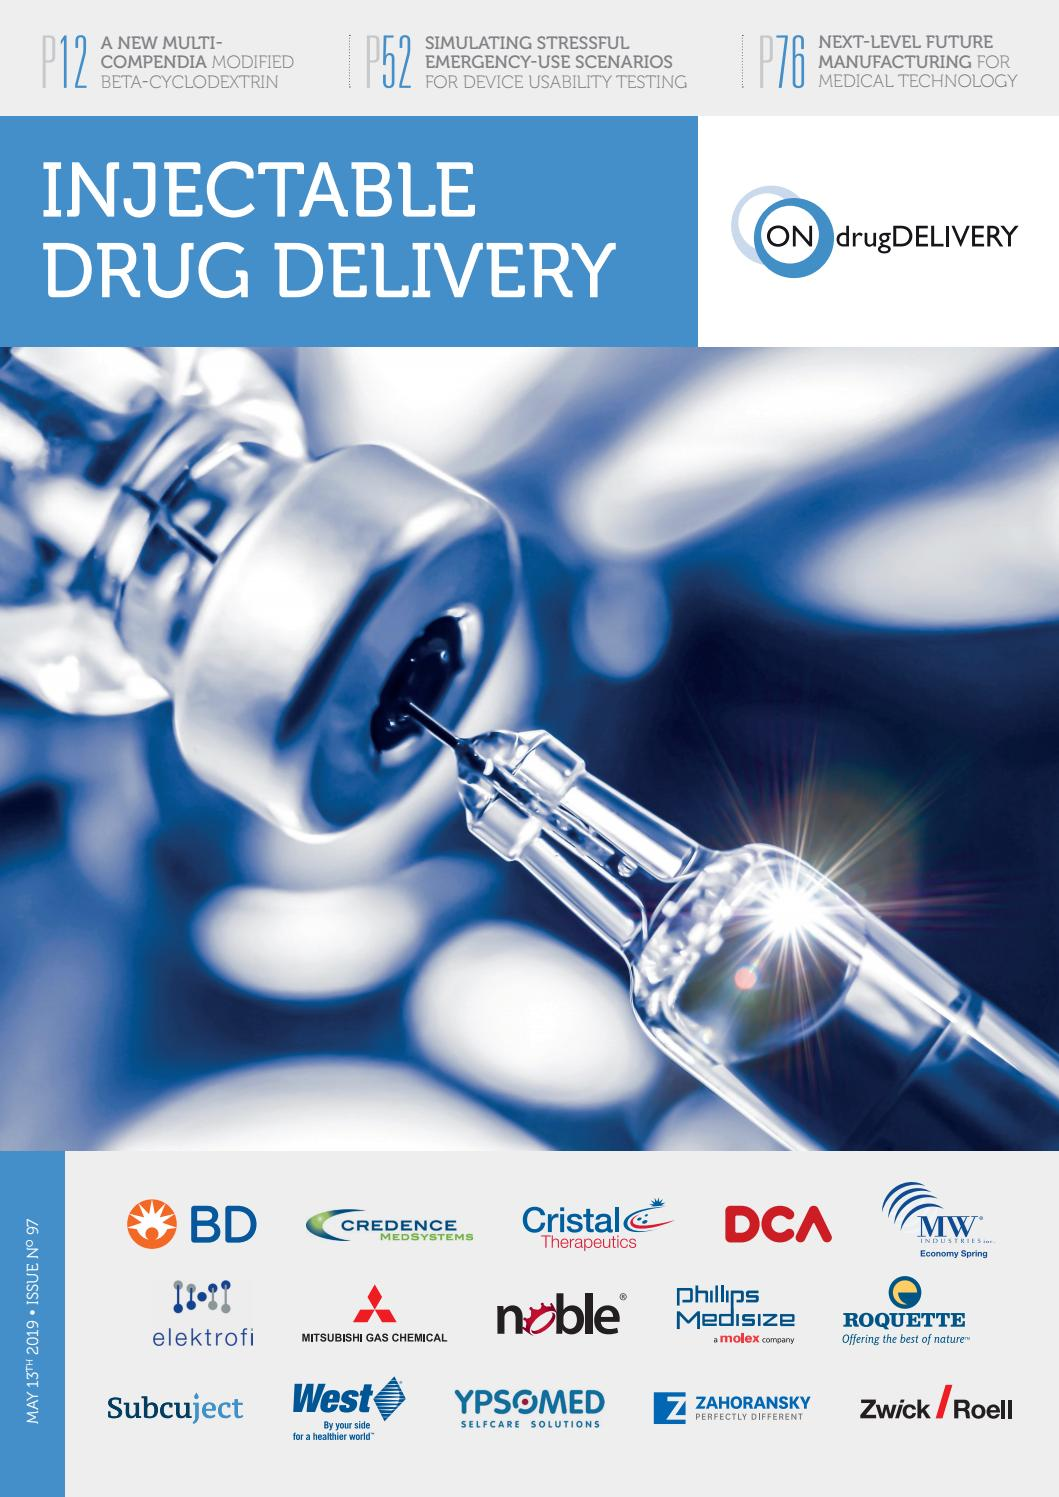 Injectable Drug Delivery - ONdrugDelivery - Issue 97 - May 2019 by